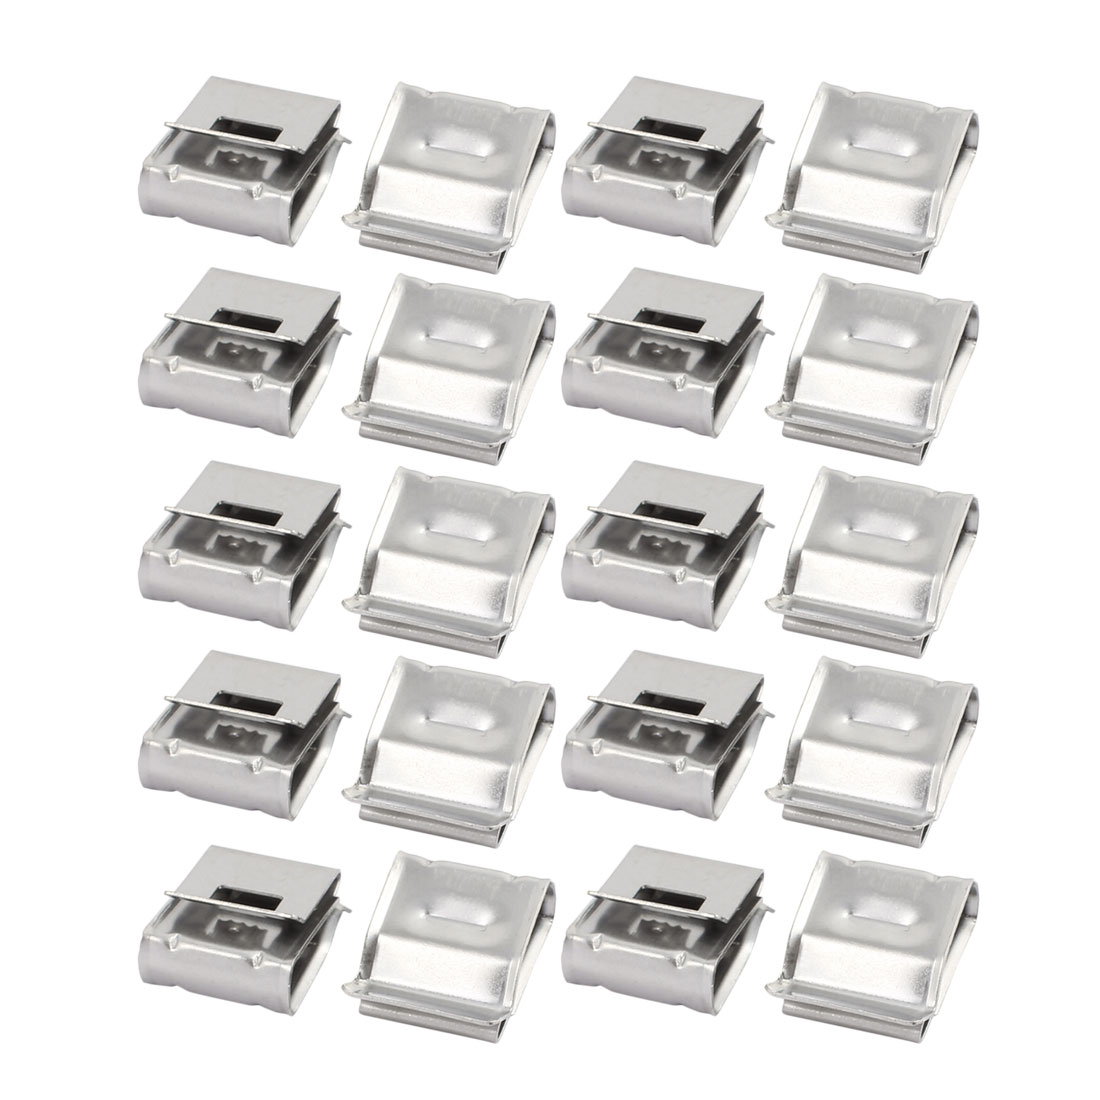 20Pcs Solar Mounting Stainless Steel Flat Cable Clamp Fit for 2 x 5mm Dia Cable